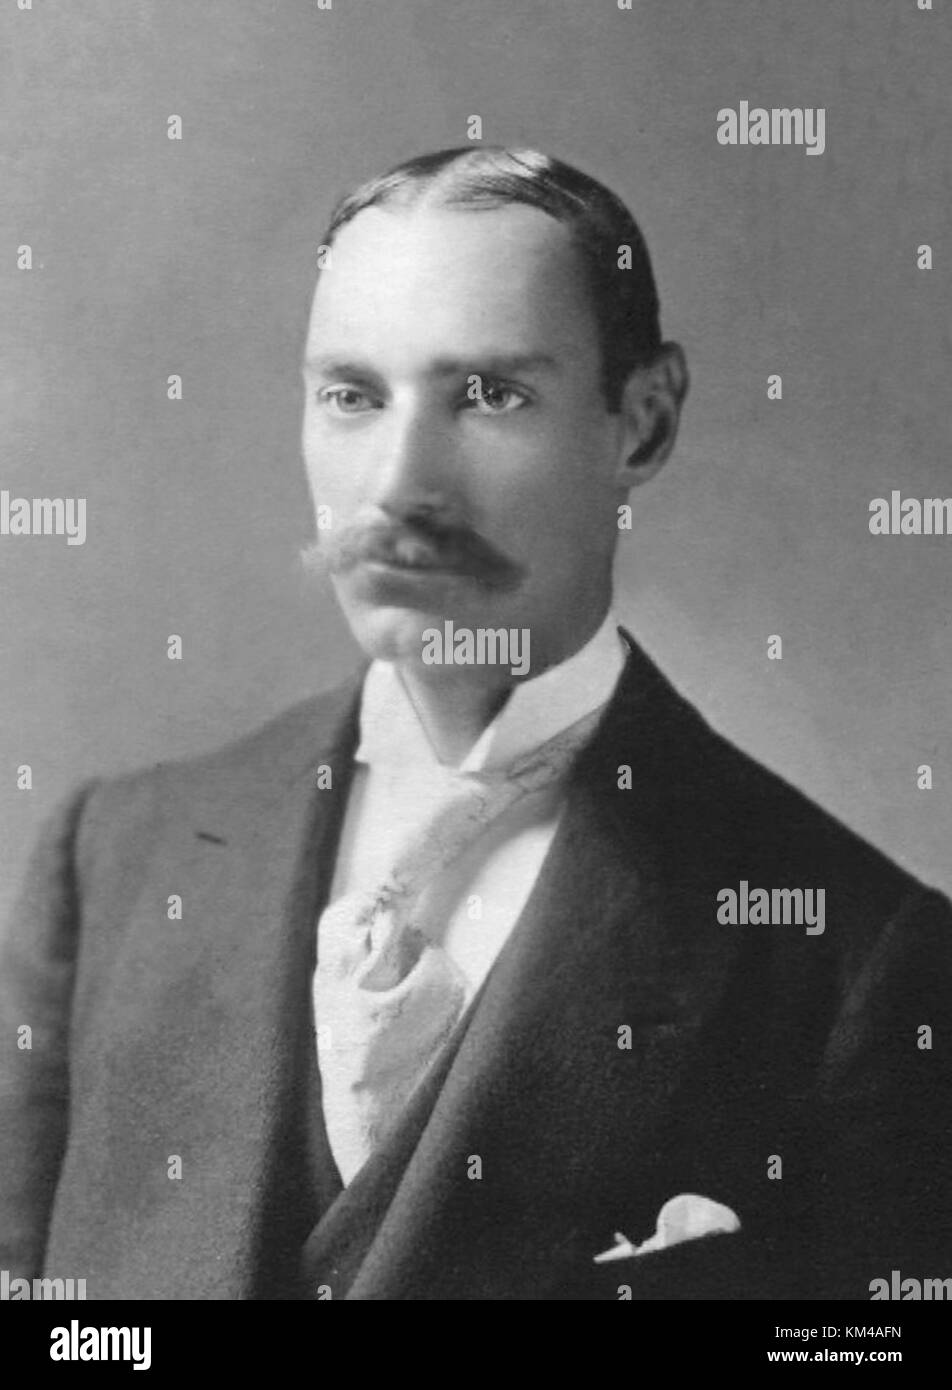 John Jacob 'Jack' Astor IV, John Astor, American businessman who died in the sinking of the RMS Titanic - Stock Image